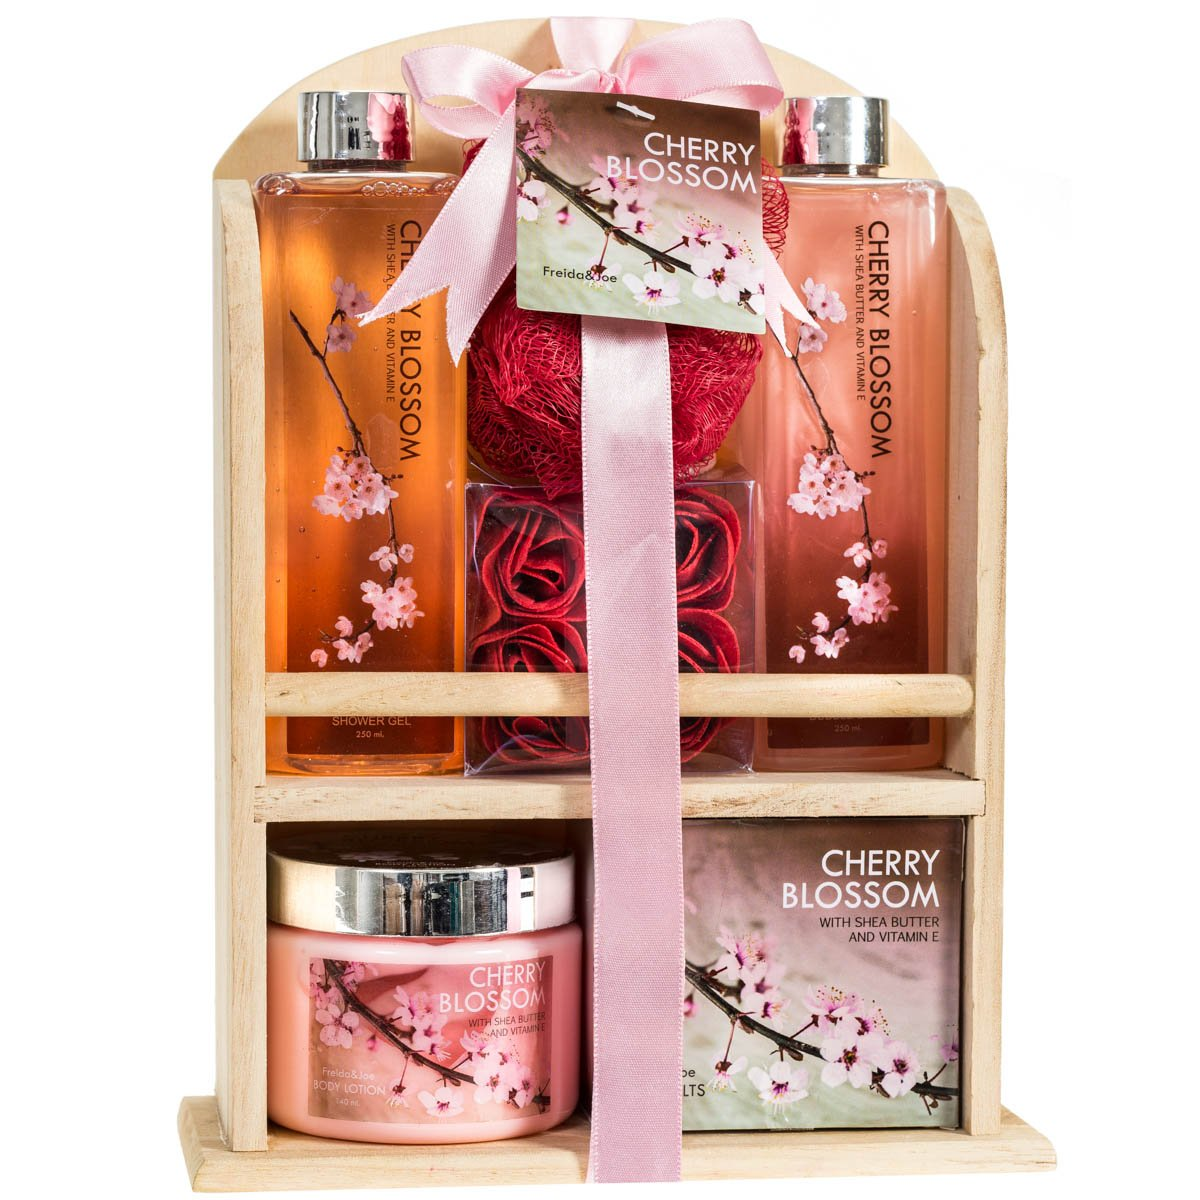 Deluxe Cherry Blossom Relaxing Spa Gift Basket For Women: Indulge Bath Gift Set Home Spa Package With Shower Gel, Bubble Bath, Bath Salts, Body Lotion, Bath Puff, Pink Bath Rose Soaps In Wooden Curio by Freida Joe